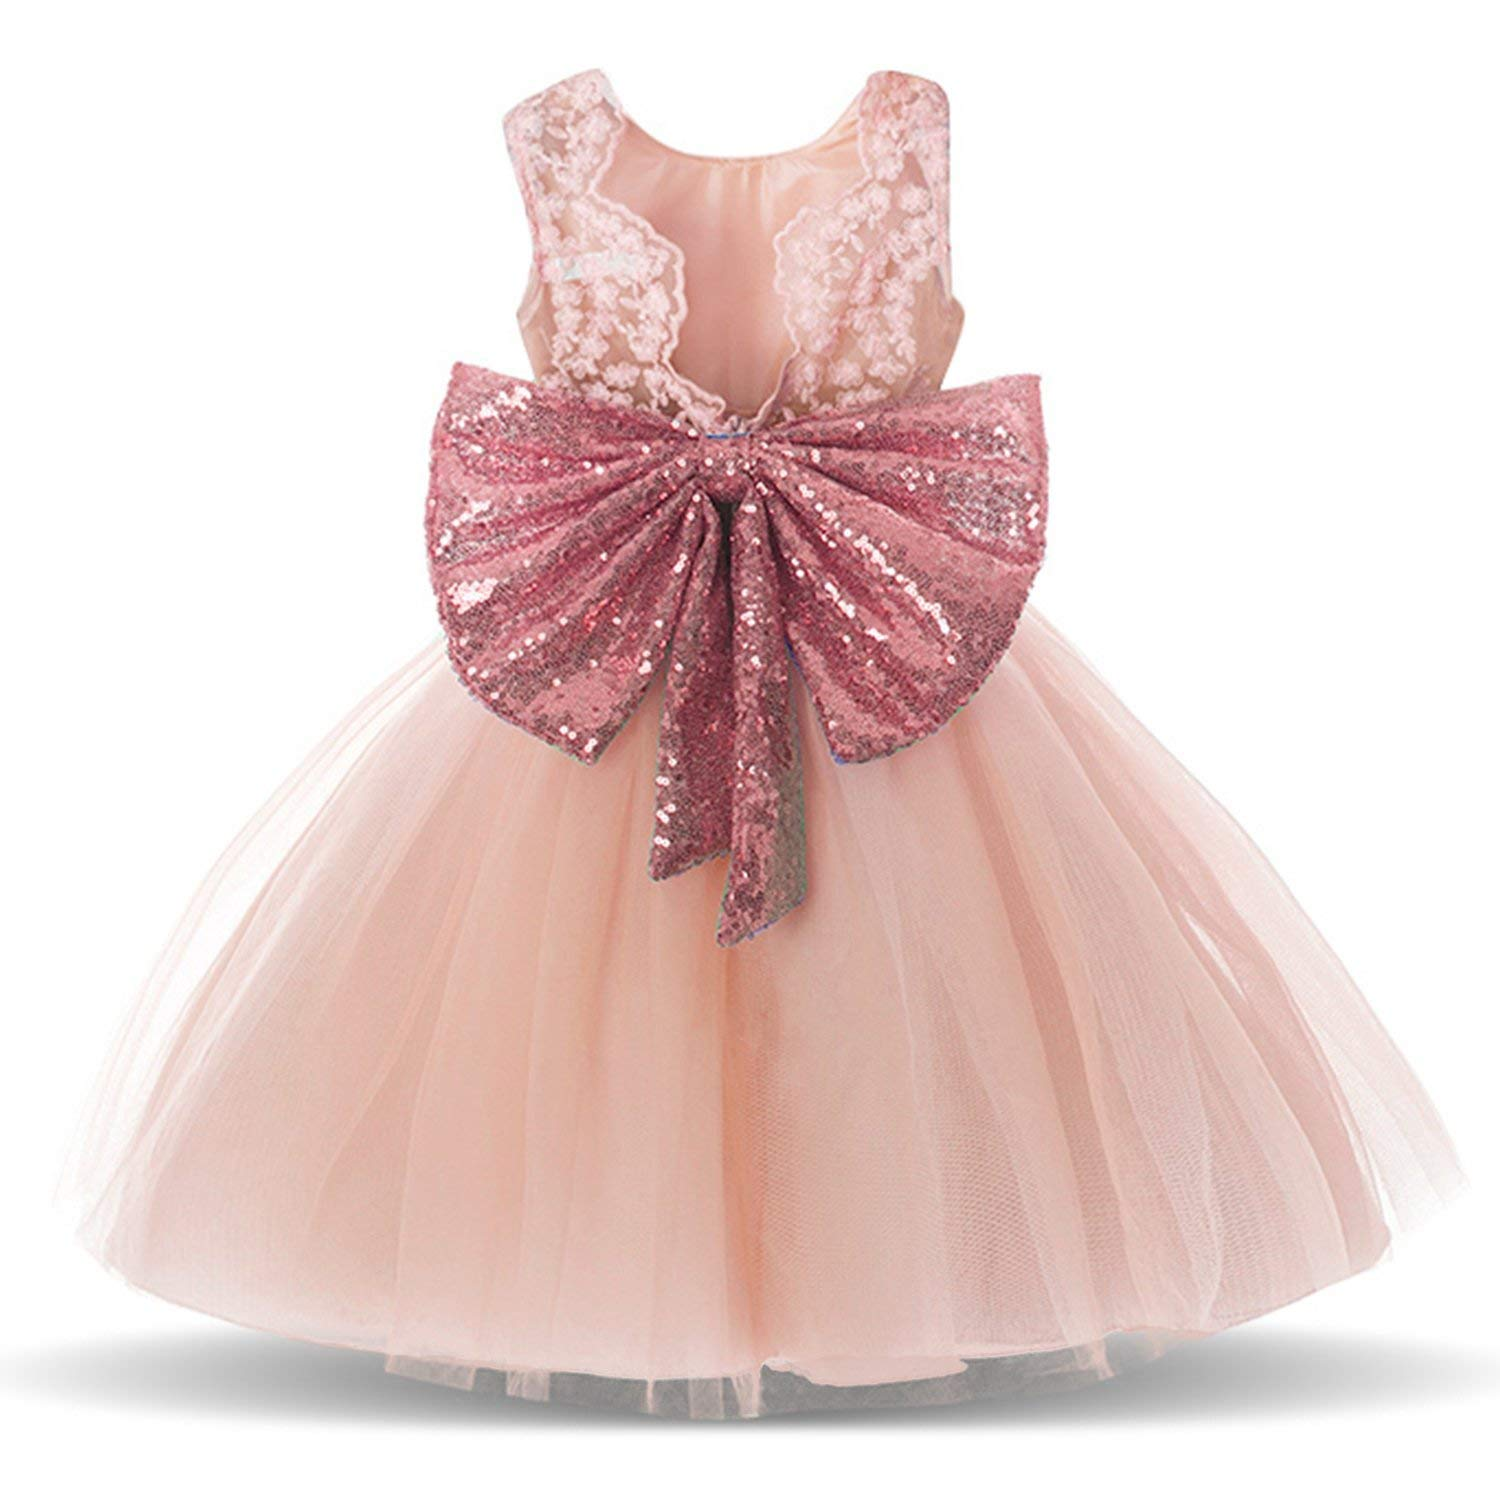 3fb1a3907 Prom Gold and Pink Dresses Backless Sequin Tulle Tutu Pageant Party ...